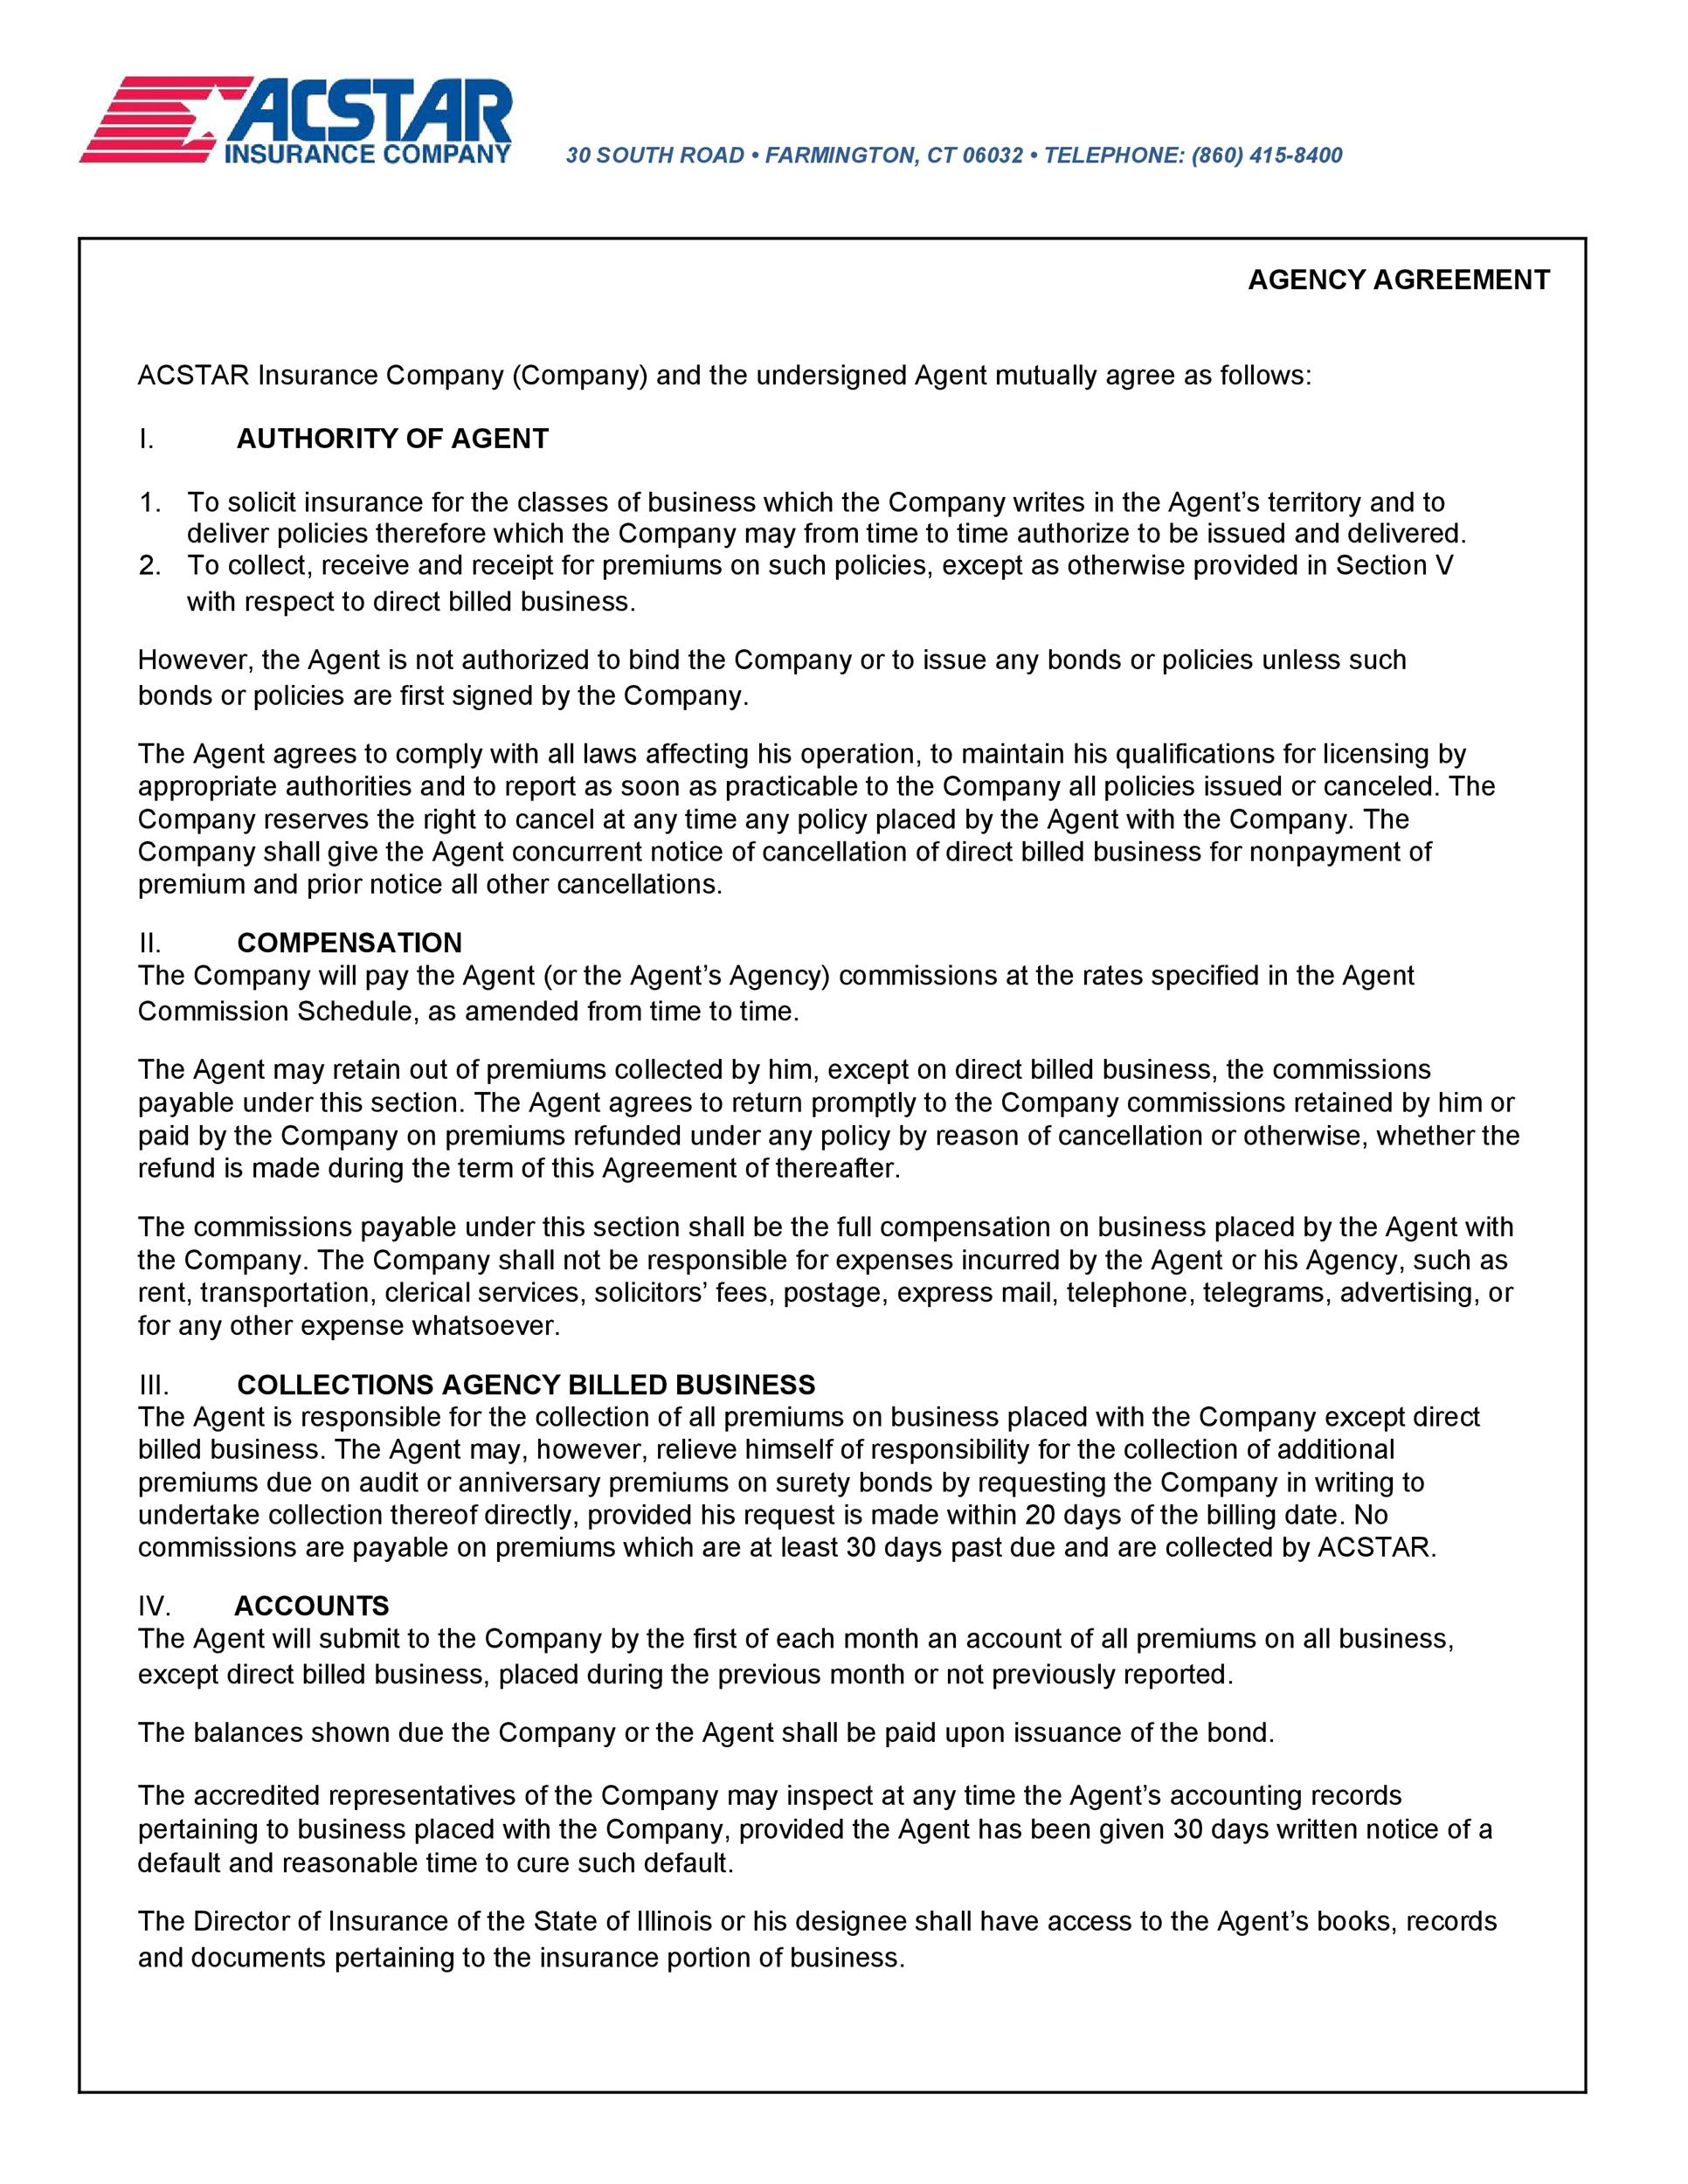 Free agency agreement 36